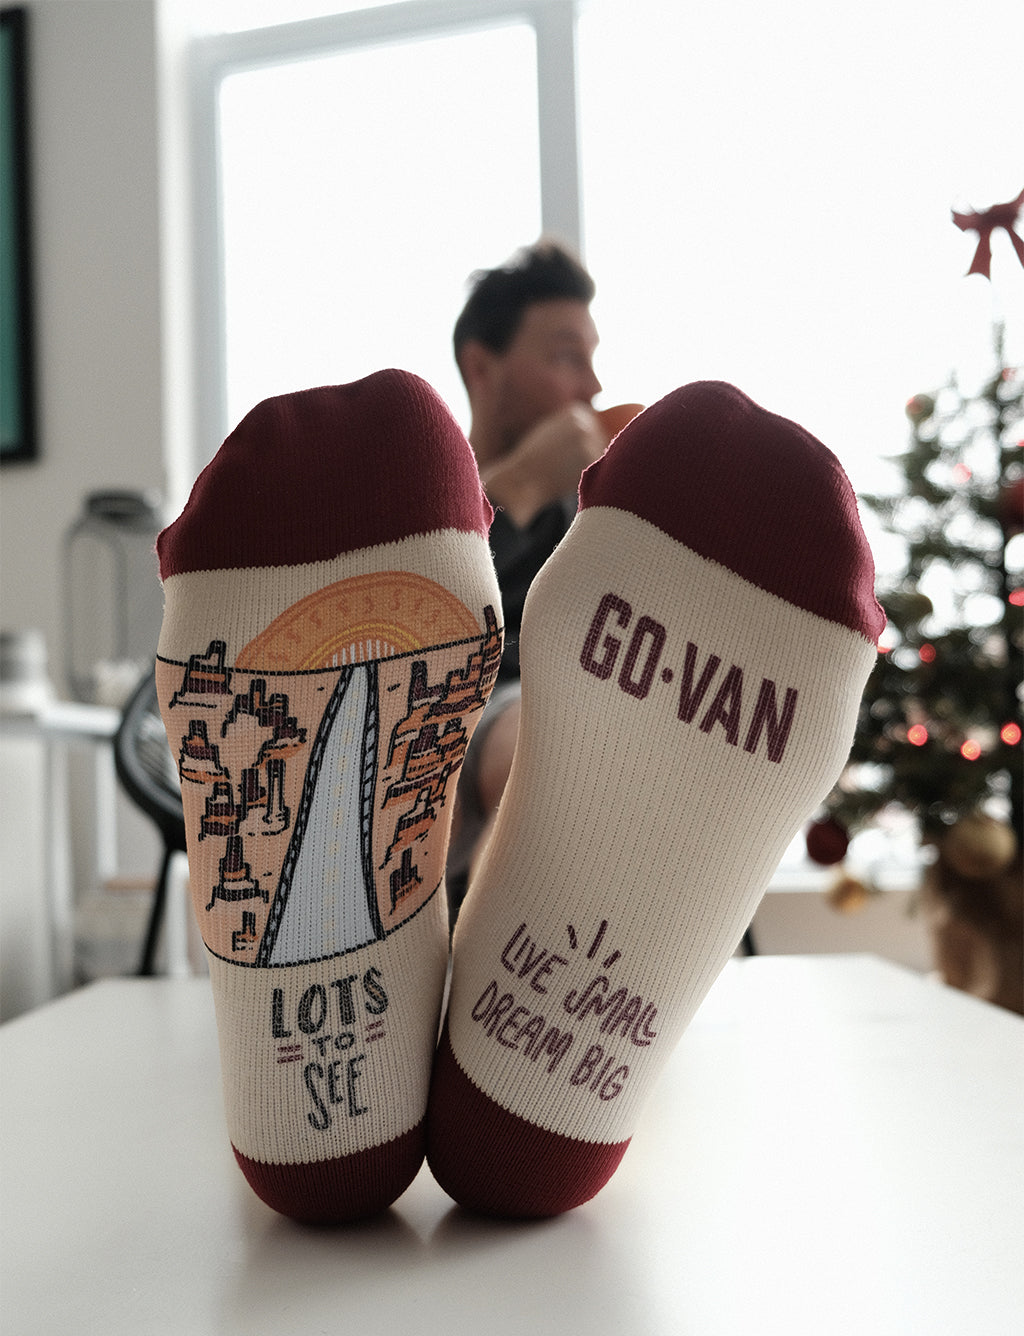 Lots To See Socks - Go-Van x Robin Des Bas Collab